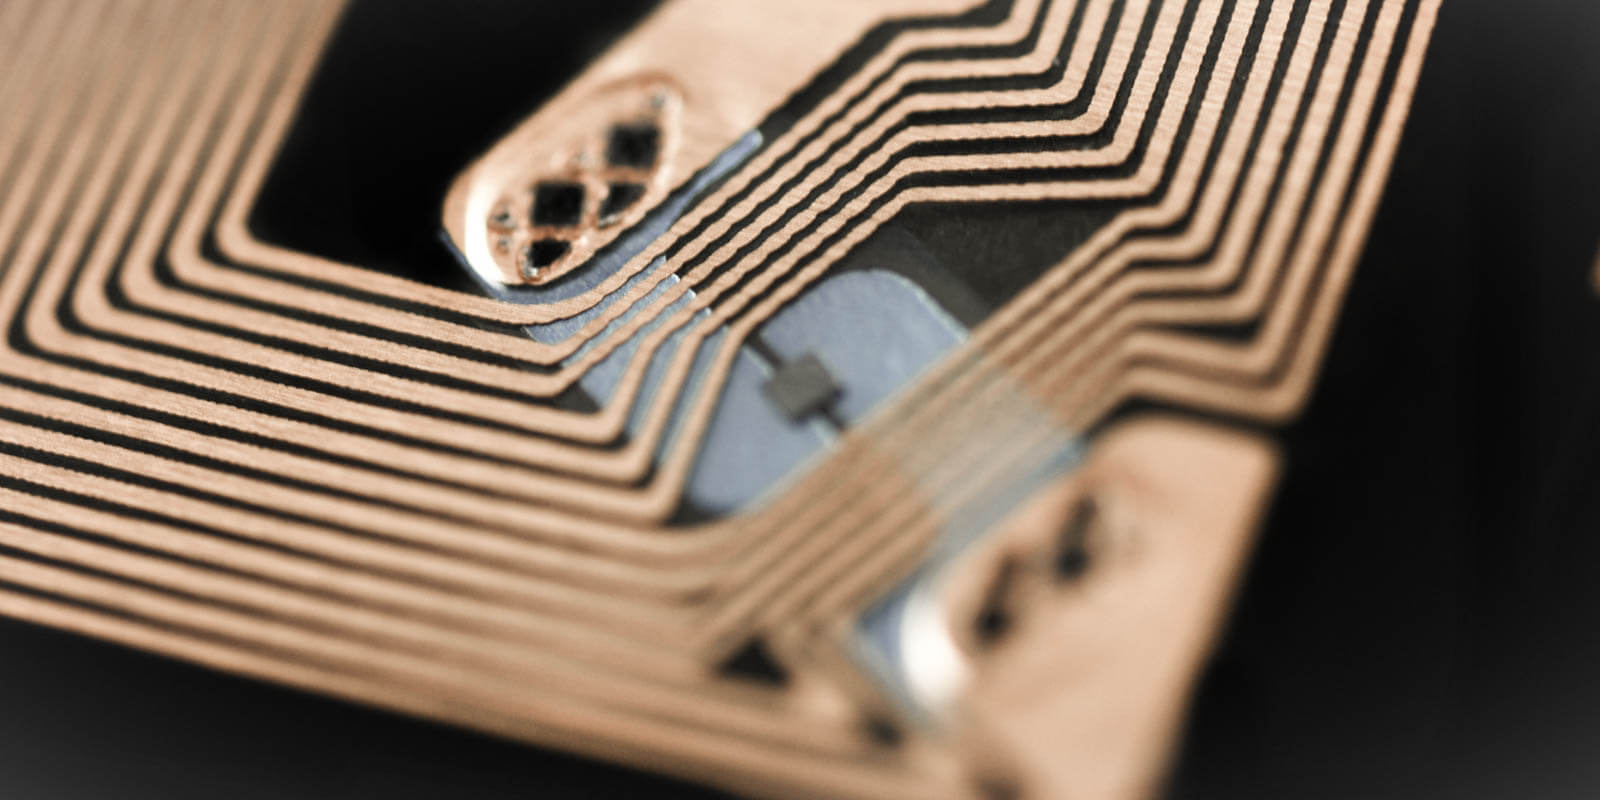 A RFID Chip in close up